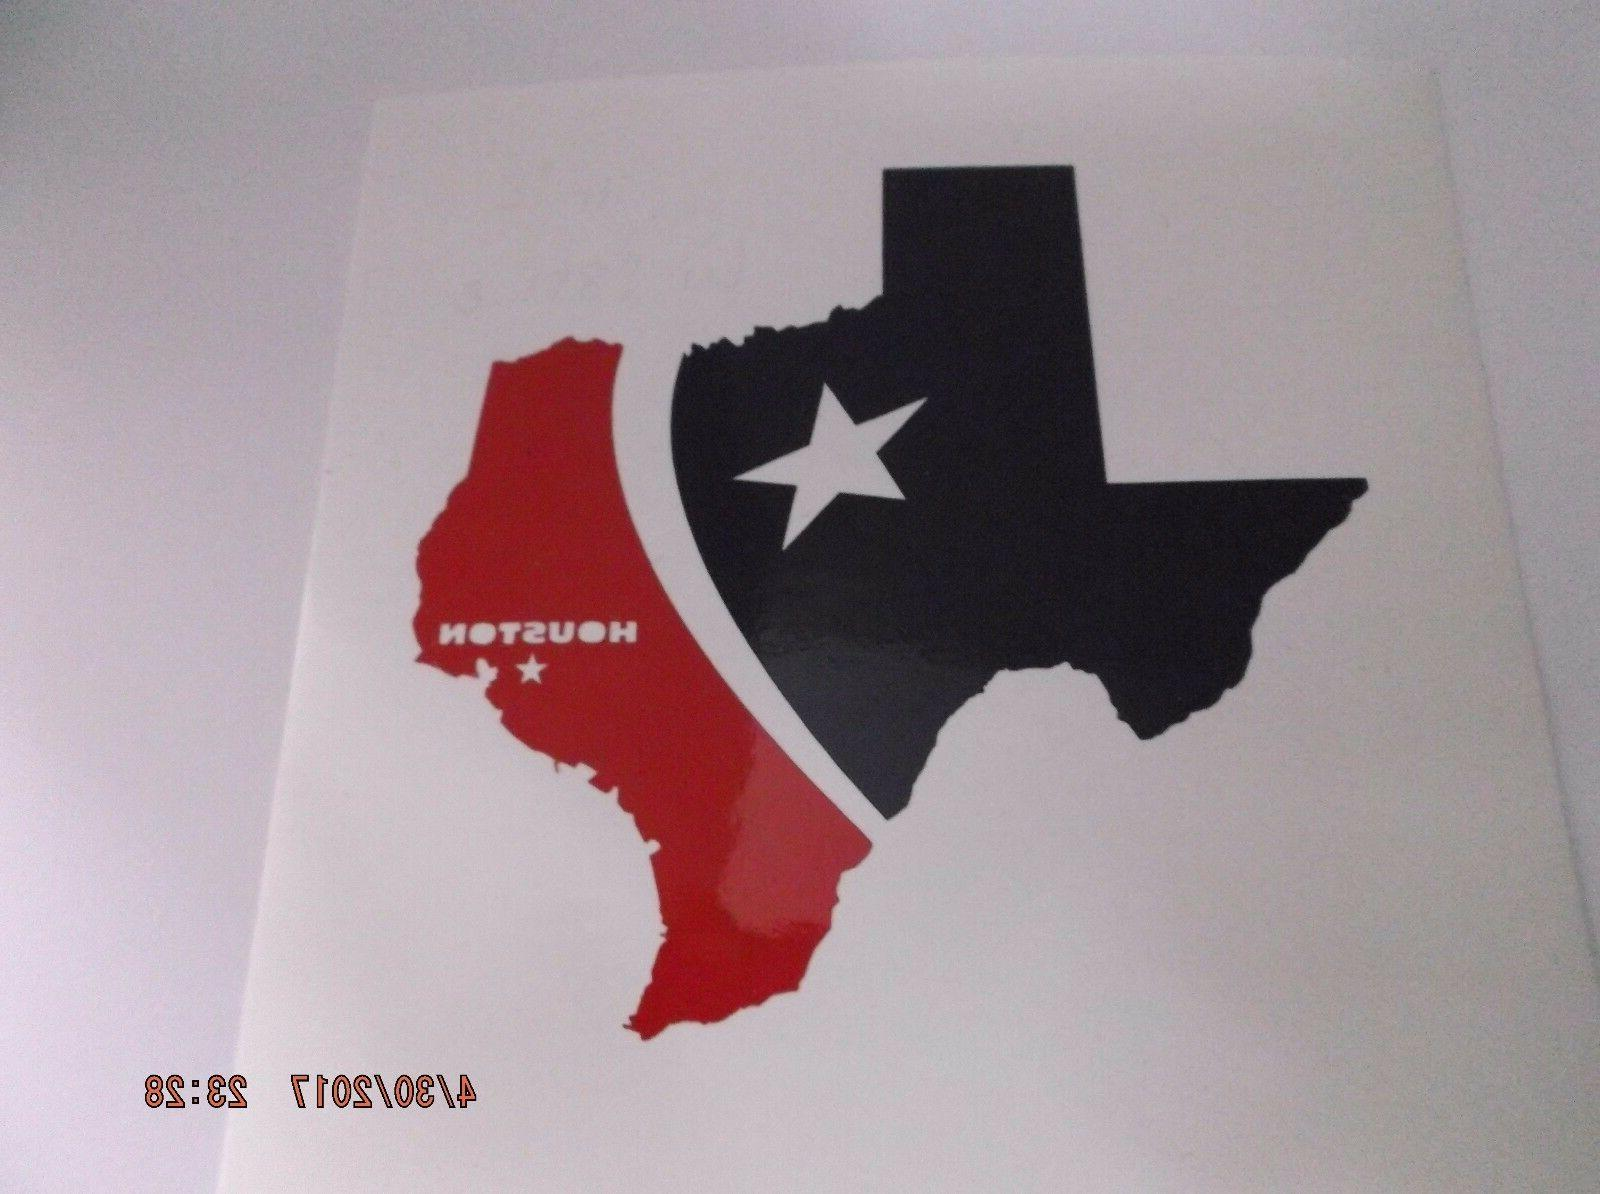 houston texans state decal sticker for rambler